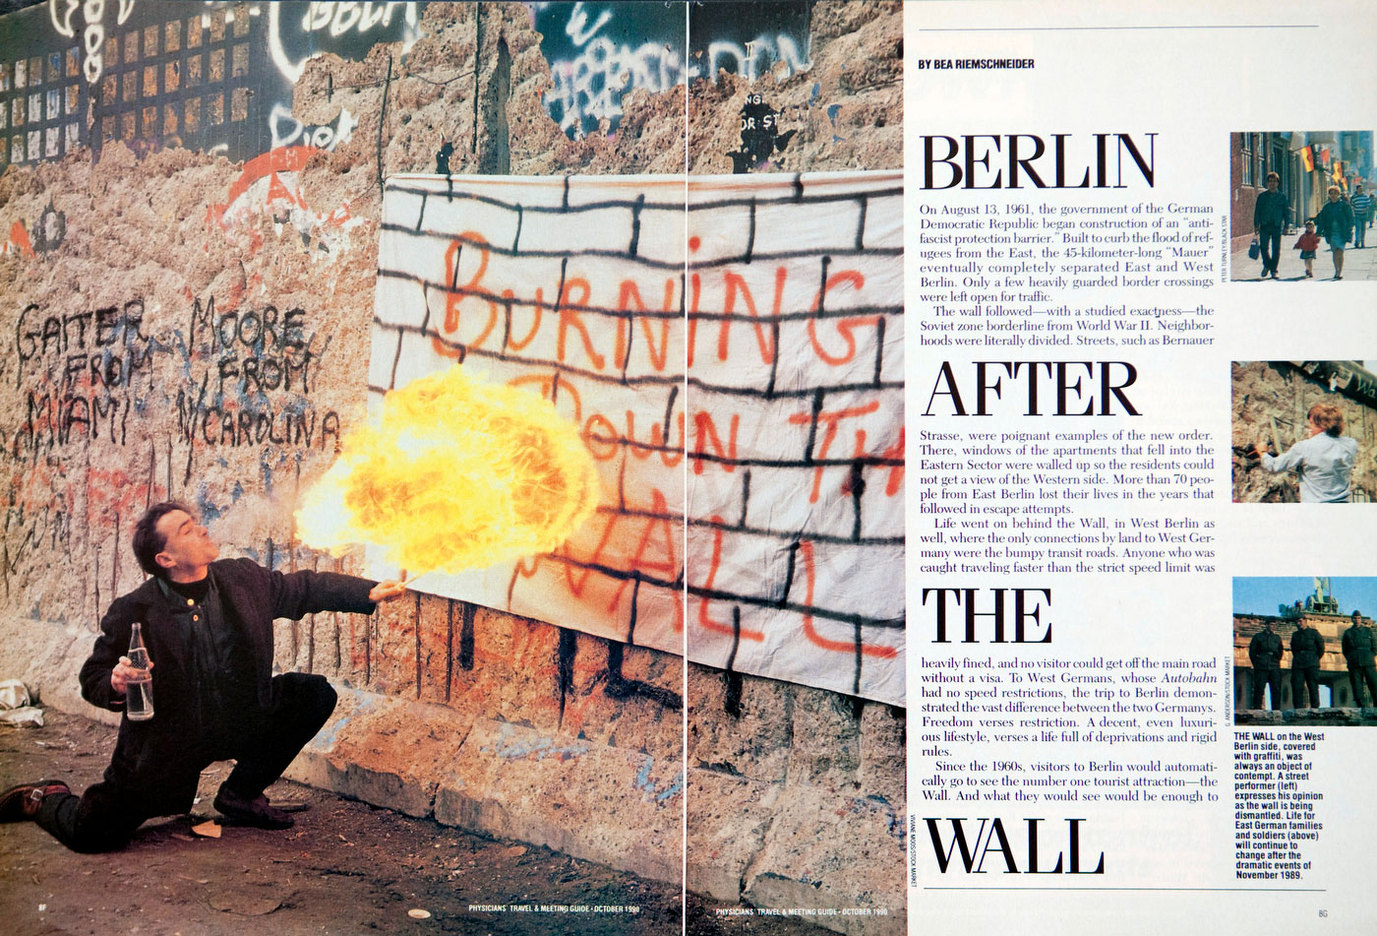 The Berlin Wall. Physicians Travel & Meeting Guide. USA : TEAR SHEETS : Viviane Moos |  Documentary Photographer